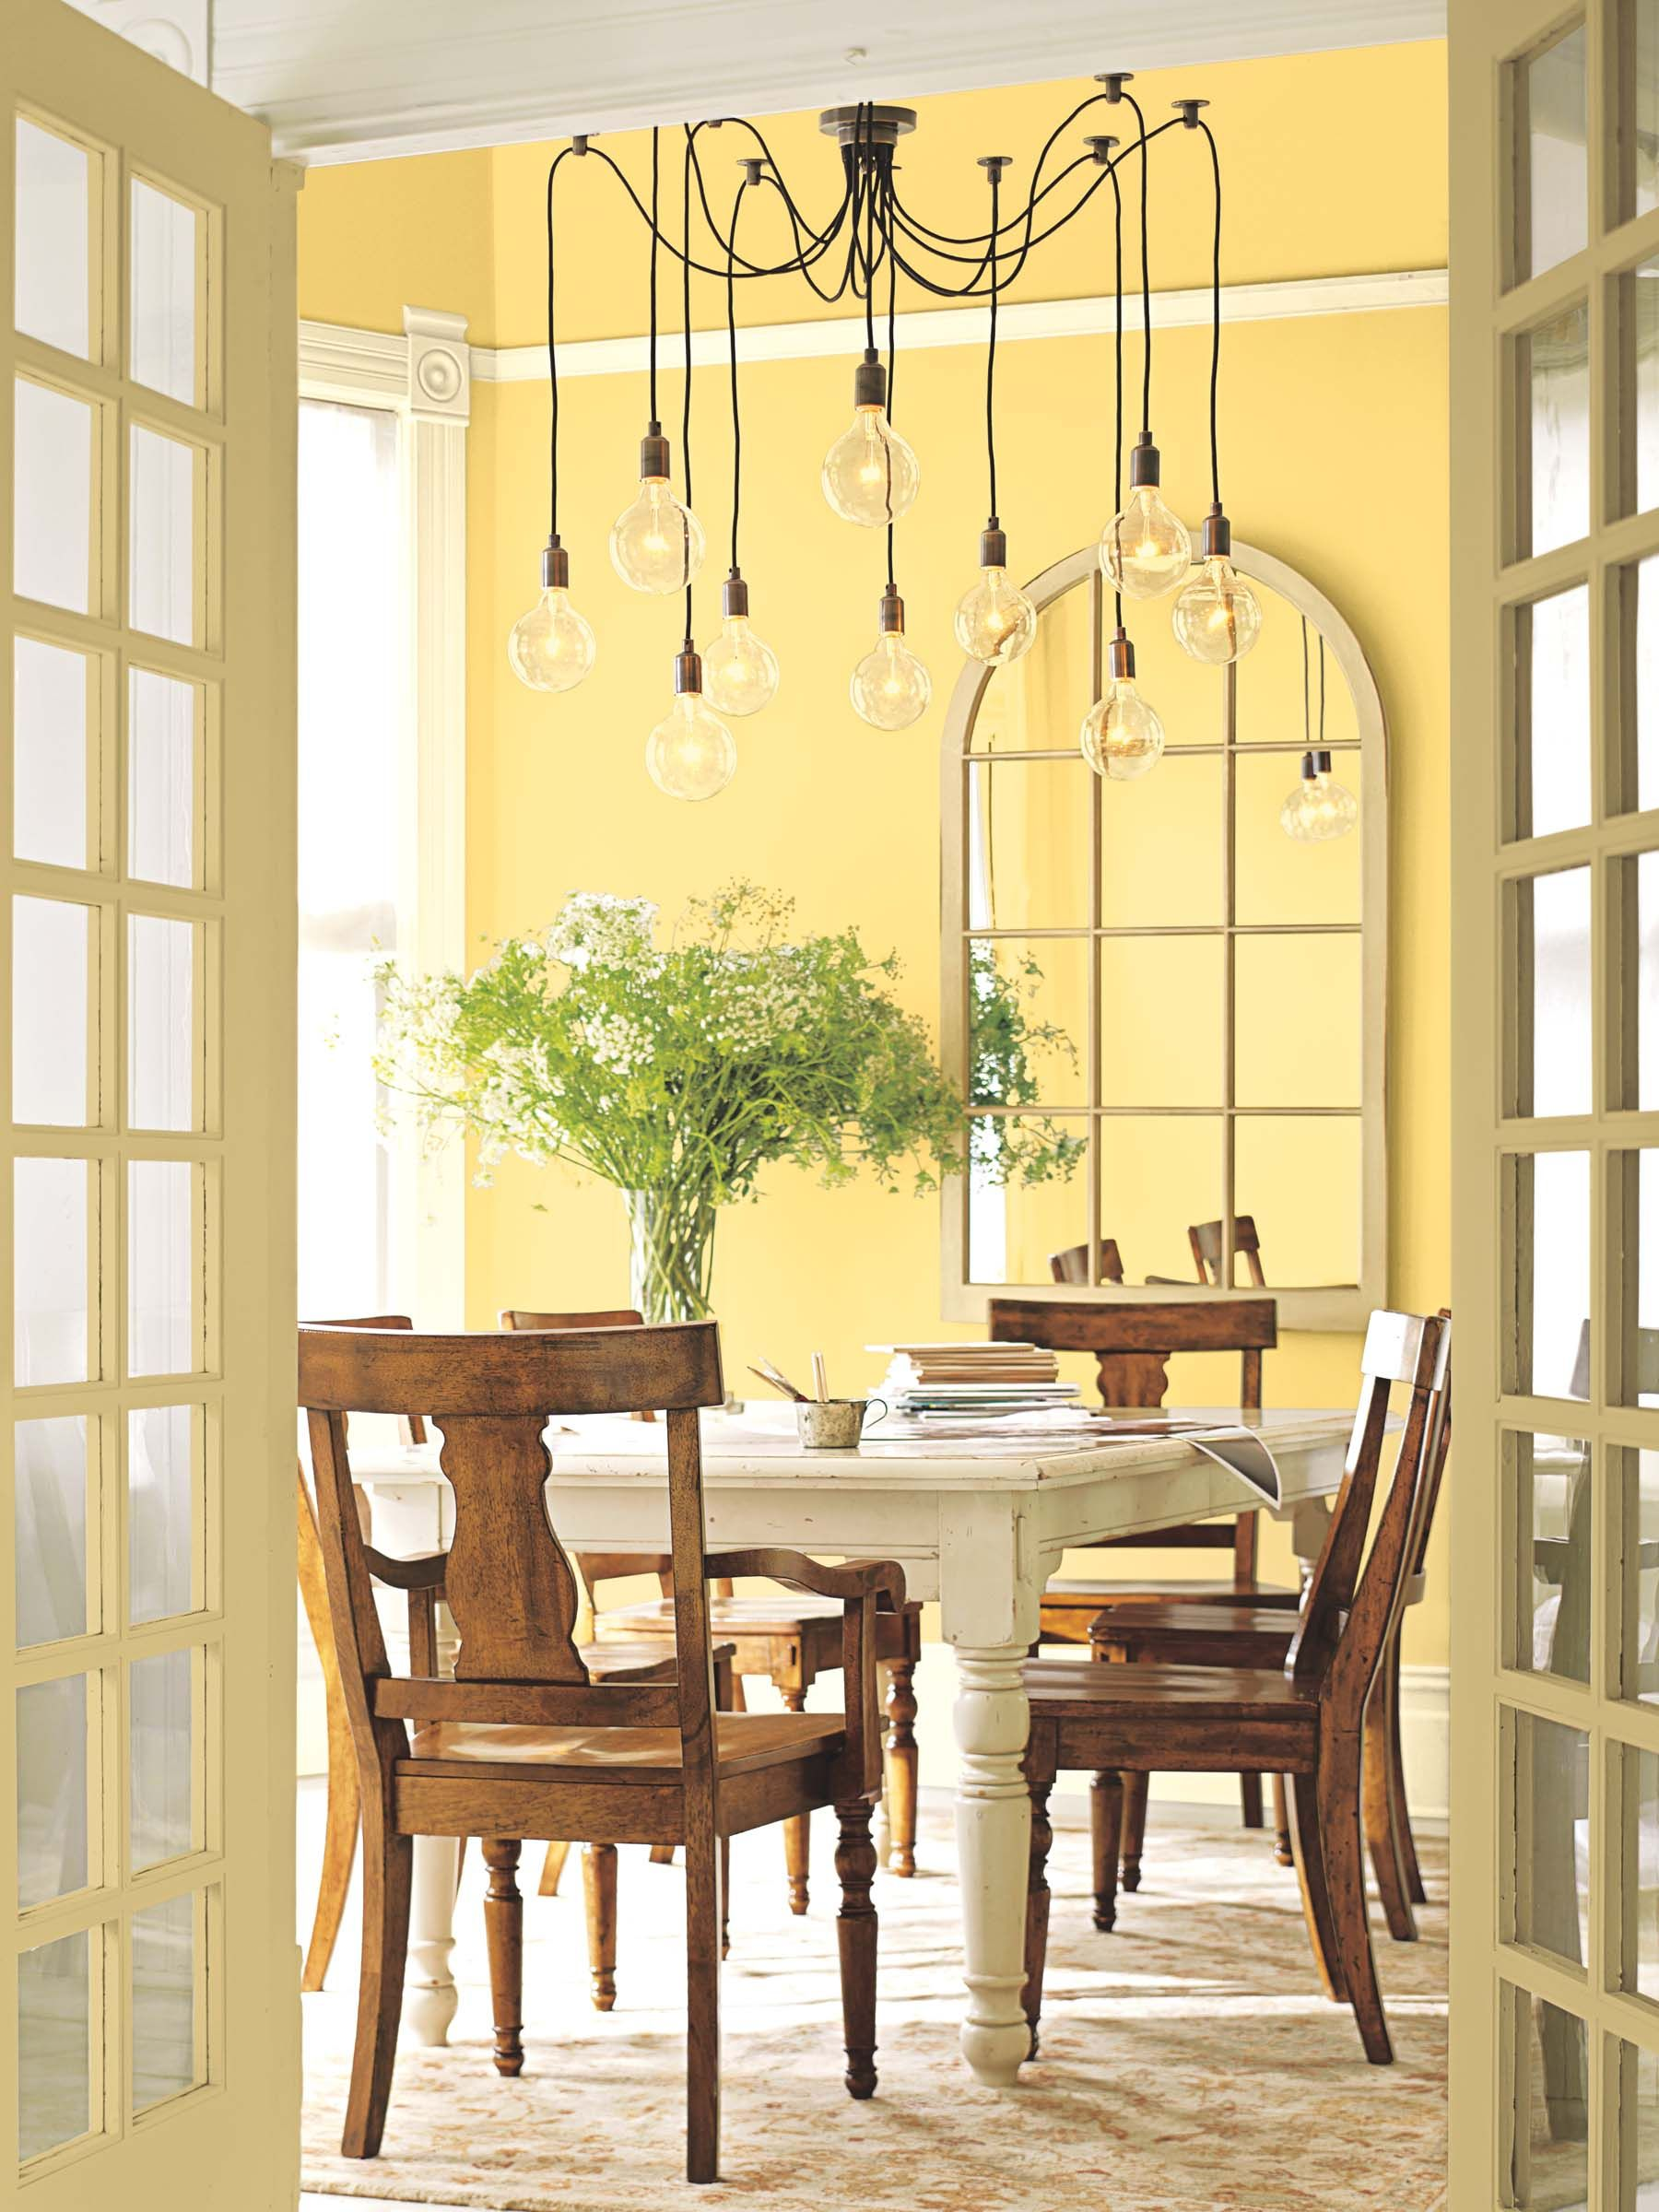 Exquisite Corner Breakfast Nook Ideas in Various